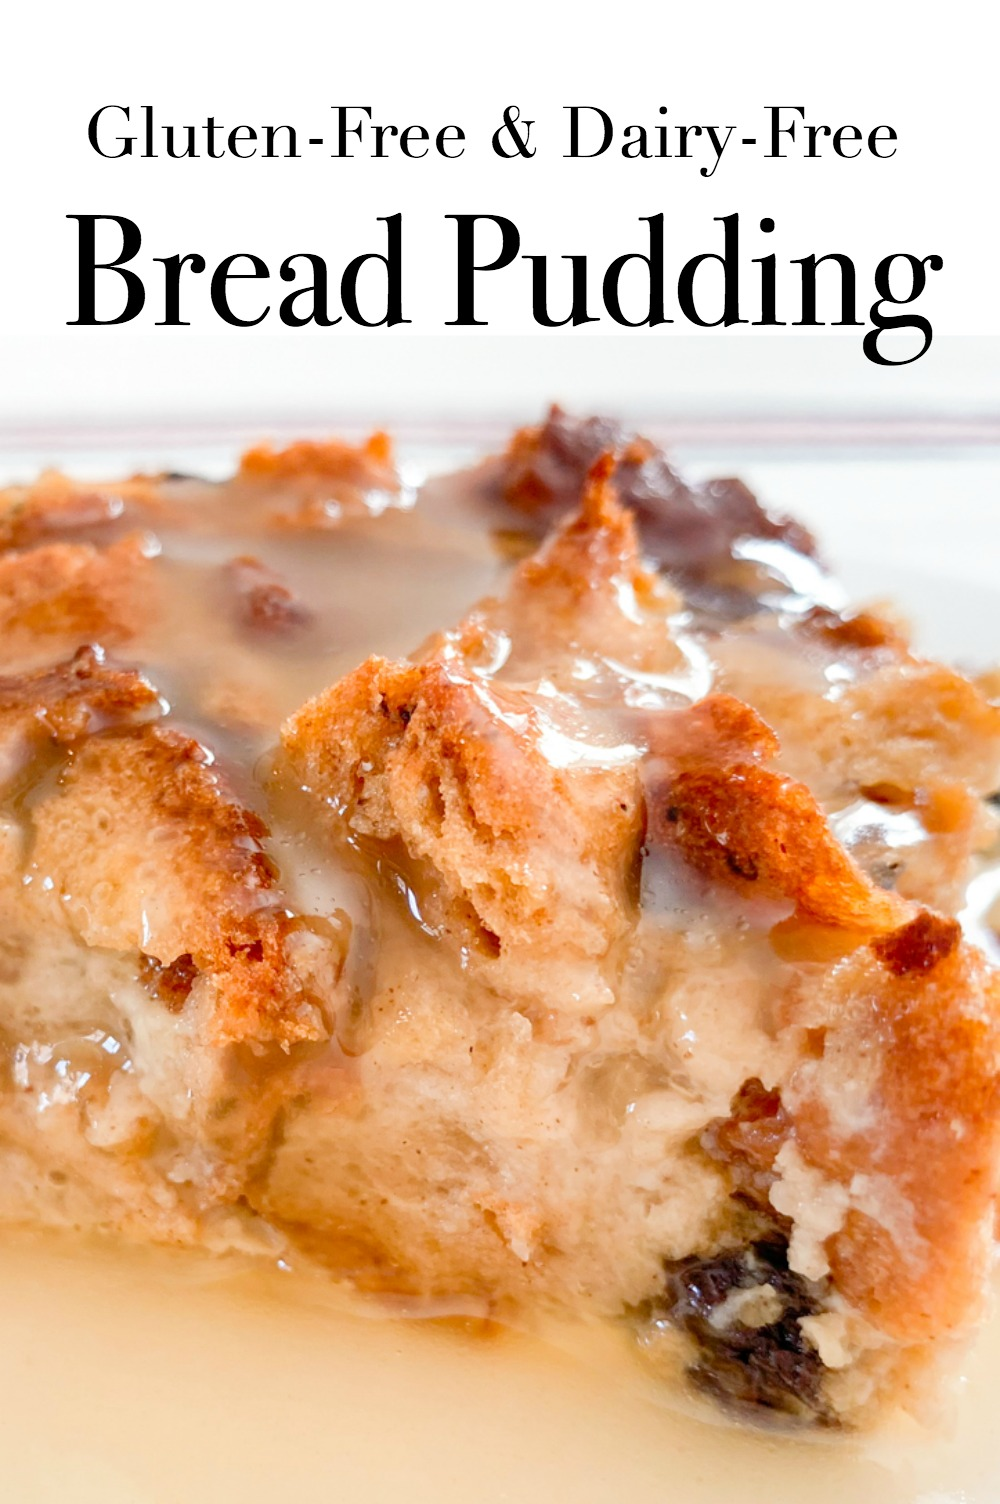 Gluten Free Bread Pudding with Vanilla Sauce.